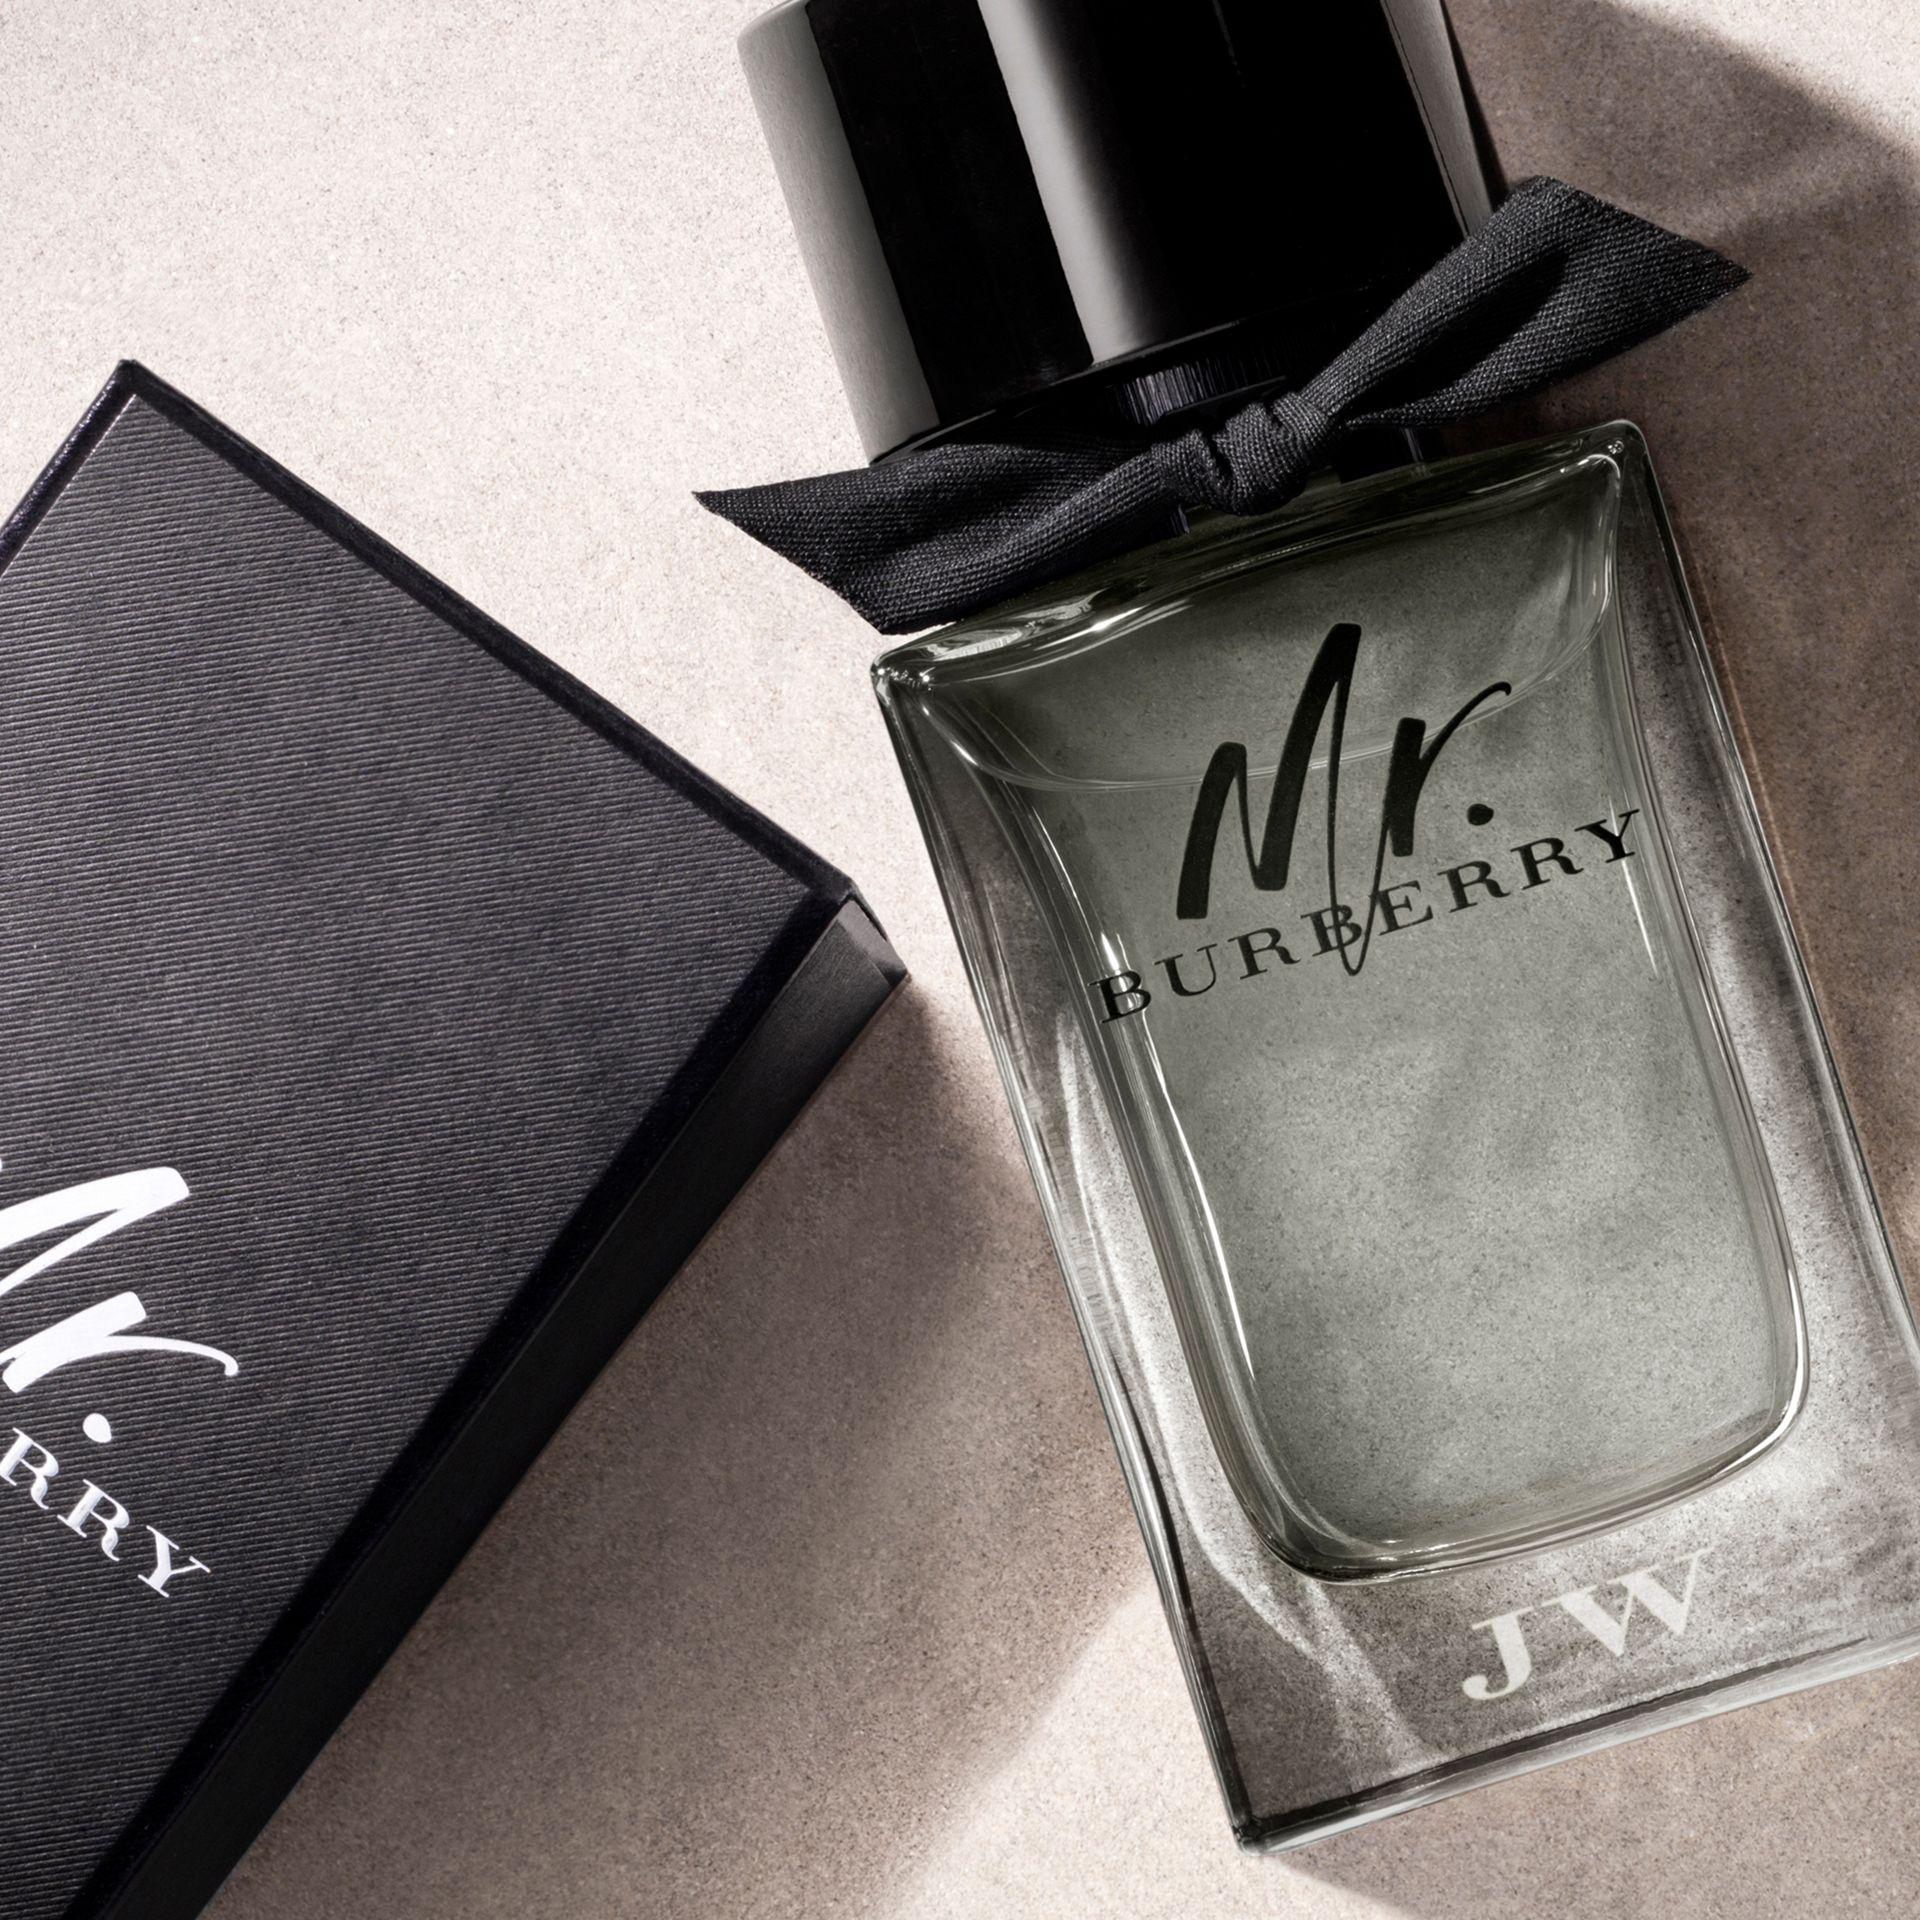 Mr. Burberry Eau de Toilette 1000ml - gallery image 4